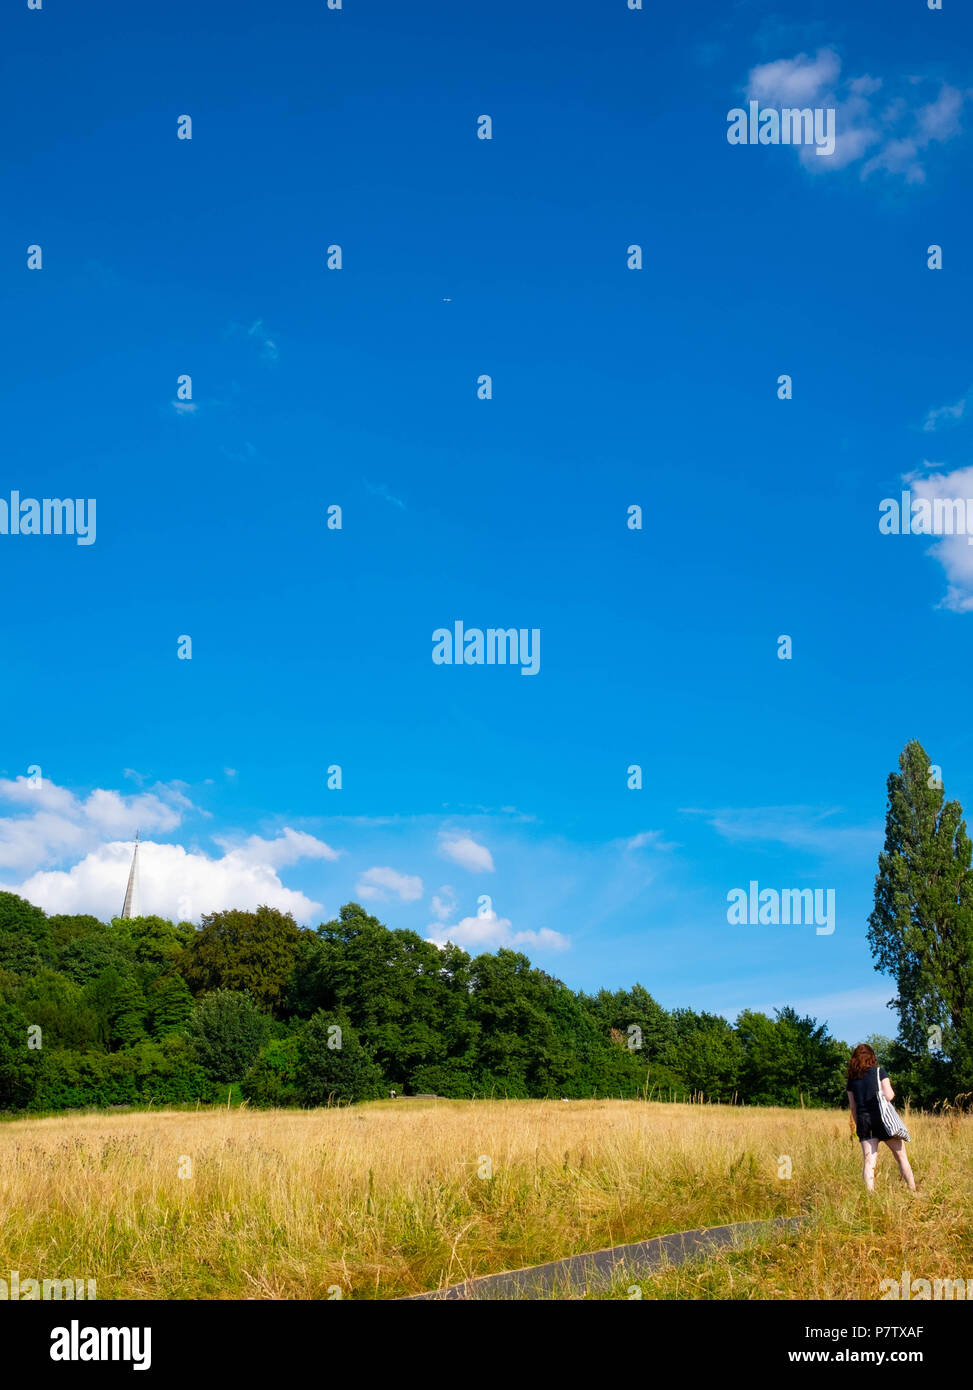 London, England. 7th July 2018. A young woman enjoying a walk on Harrow-on-the Hill in the afternoon sunshine. The present heatwave is set to continue. ©Tim Ring/Alamy Live News Stock Photo